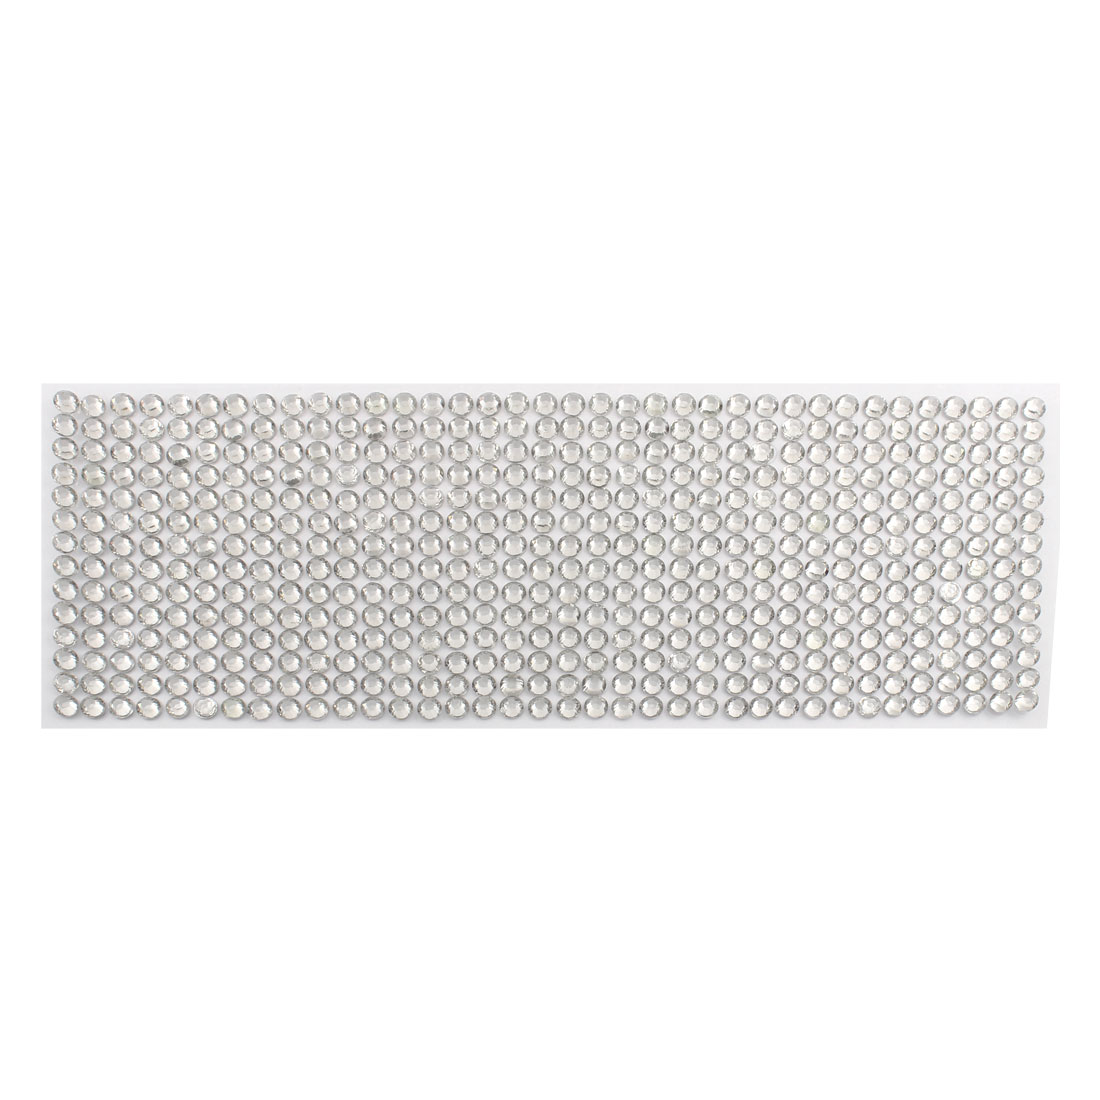 Silver Tone Self Adhesive Bling Crystal Rhinestone Decorating DIY Stickers 255mm x 90mm